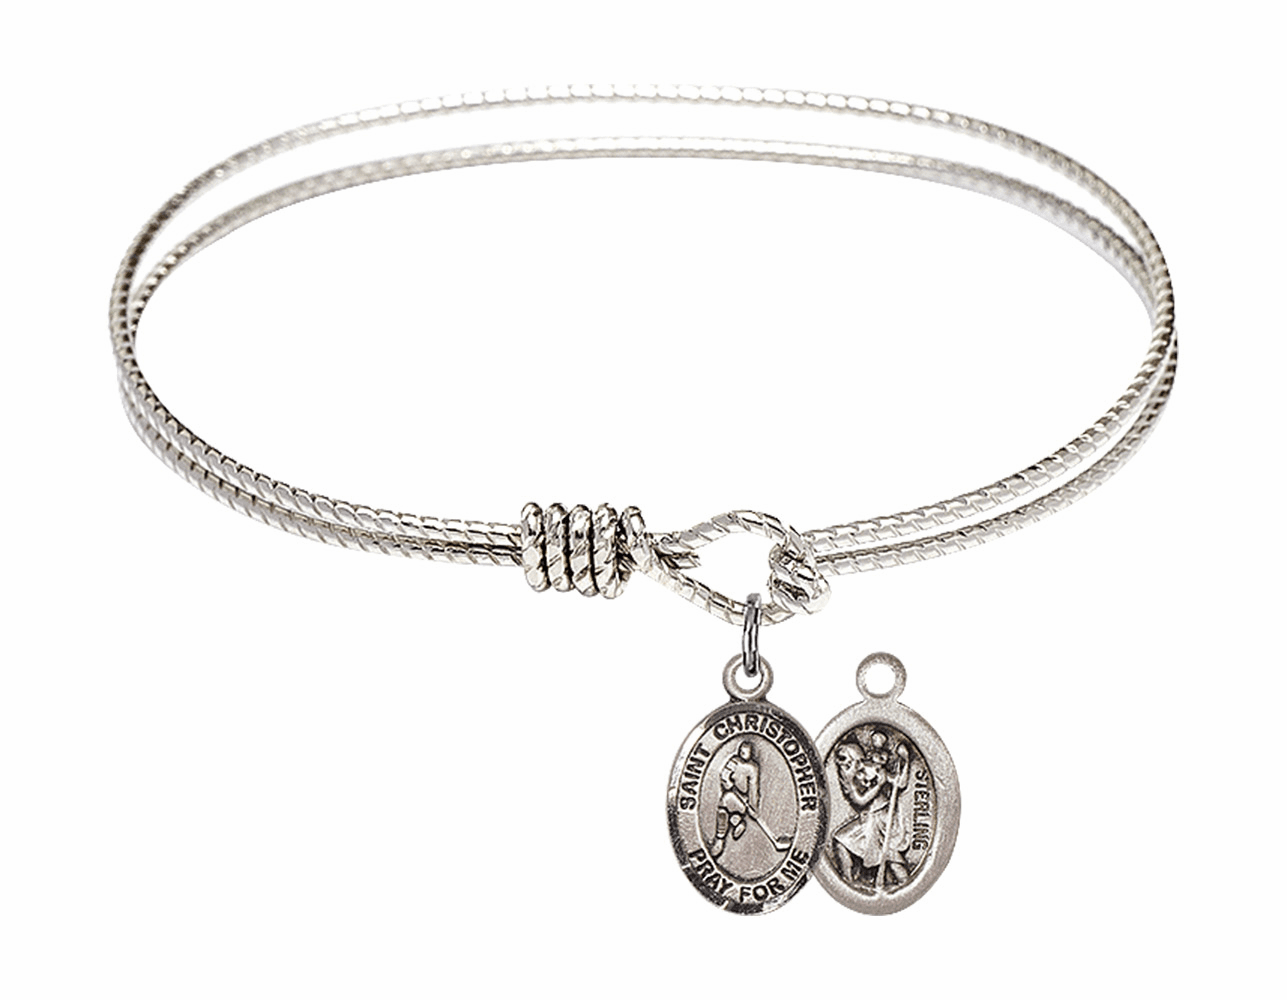 Twist Round Eye Hook St Christopher Ice Hockey Bangle Charm Bracelet by Bliss